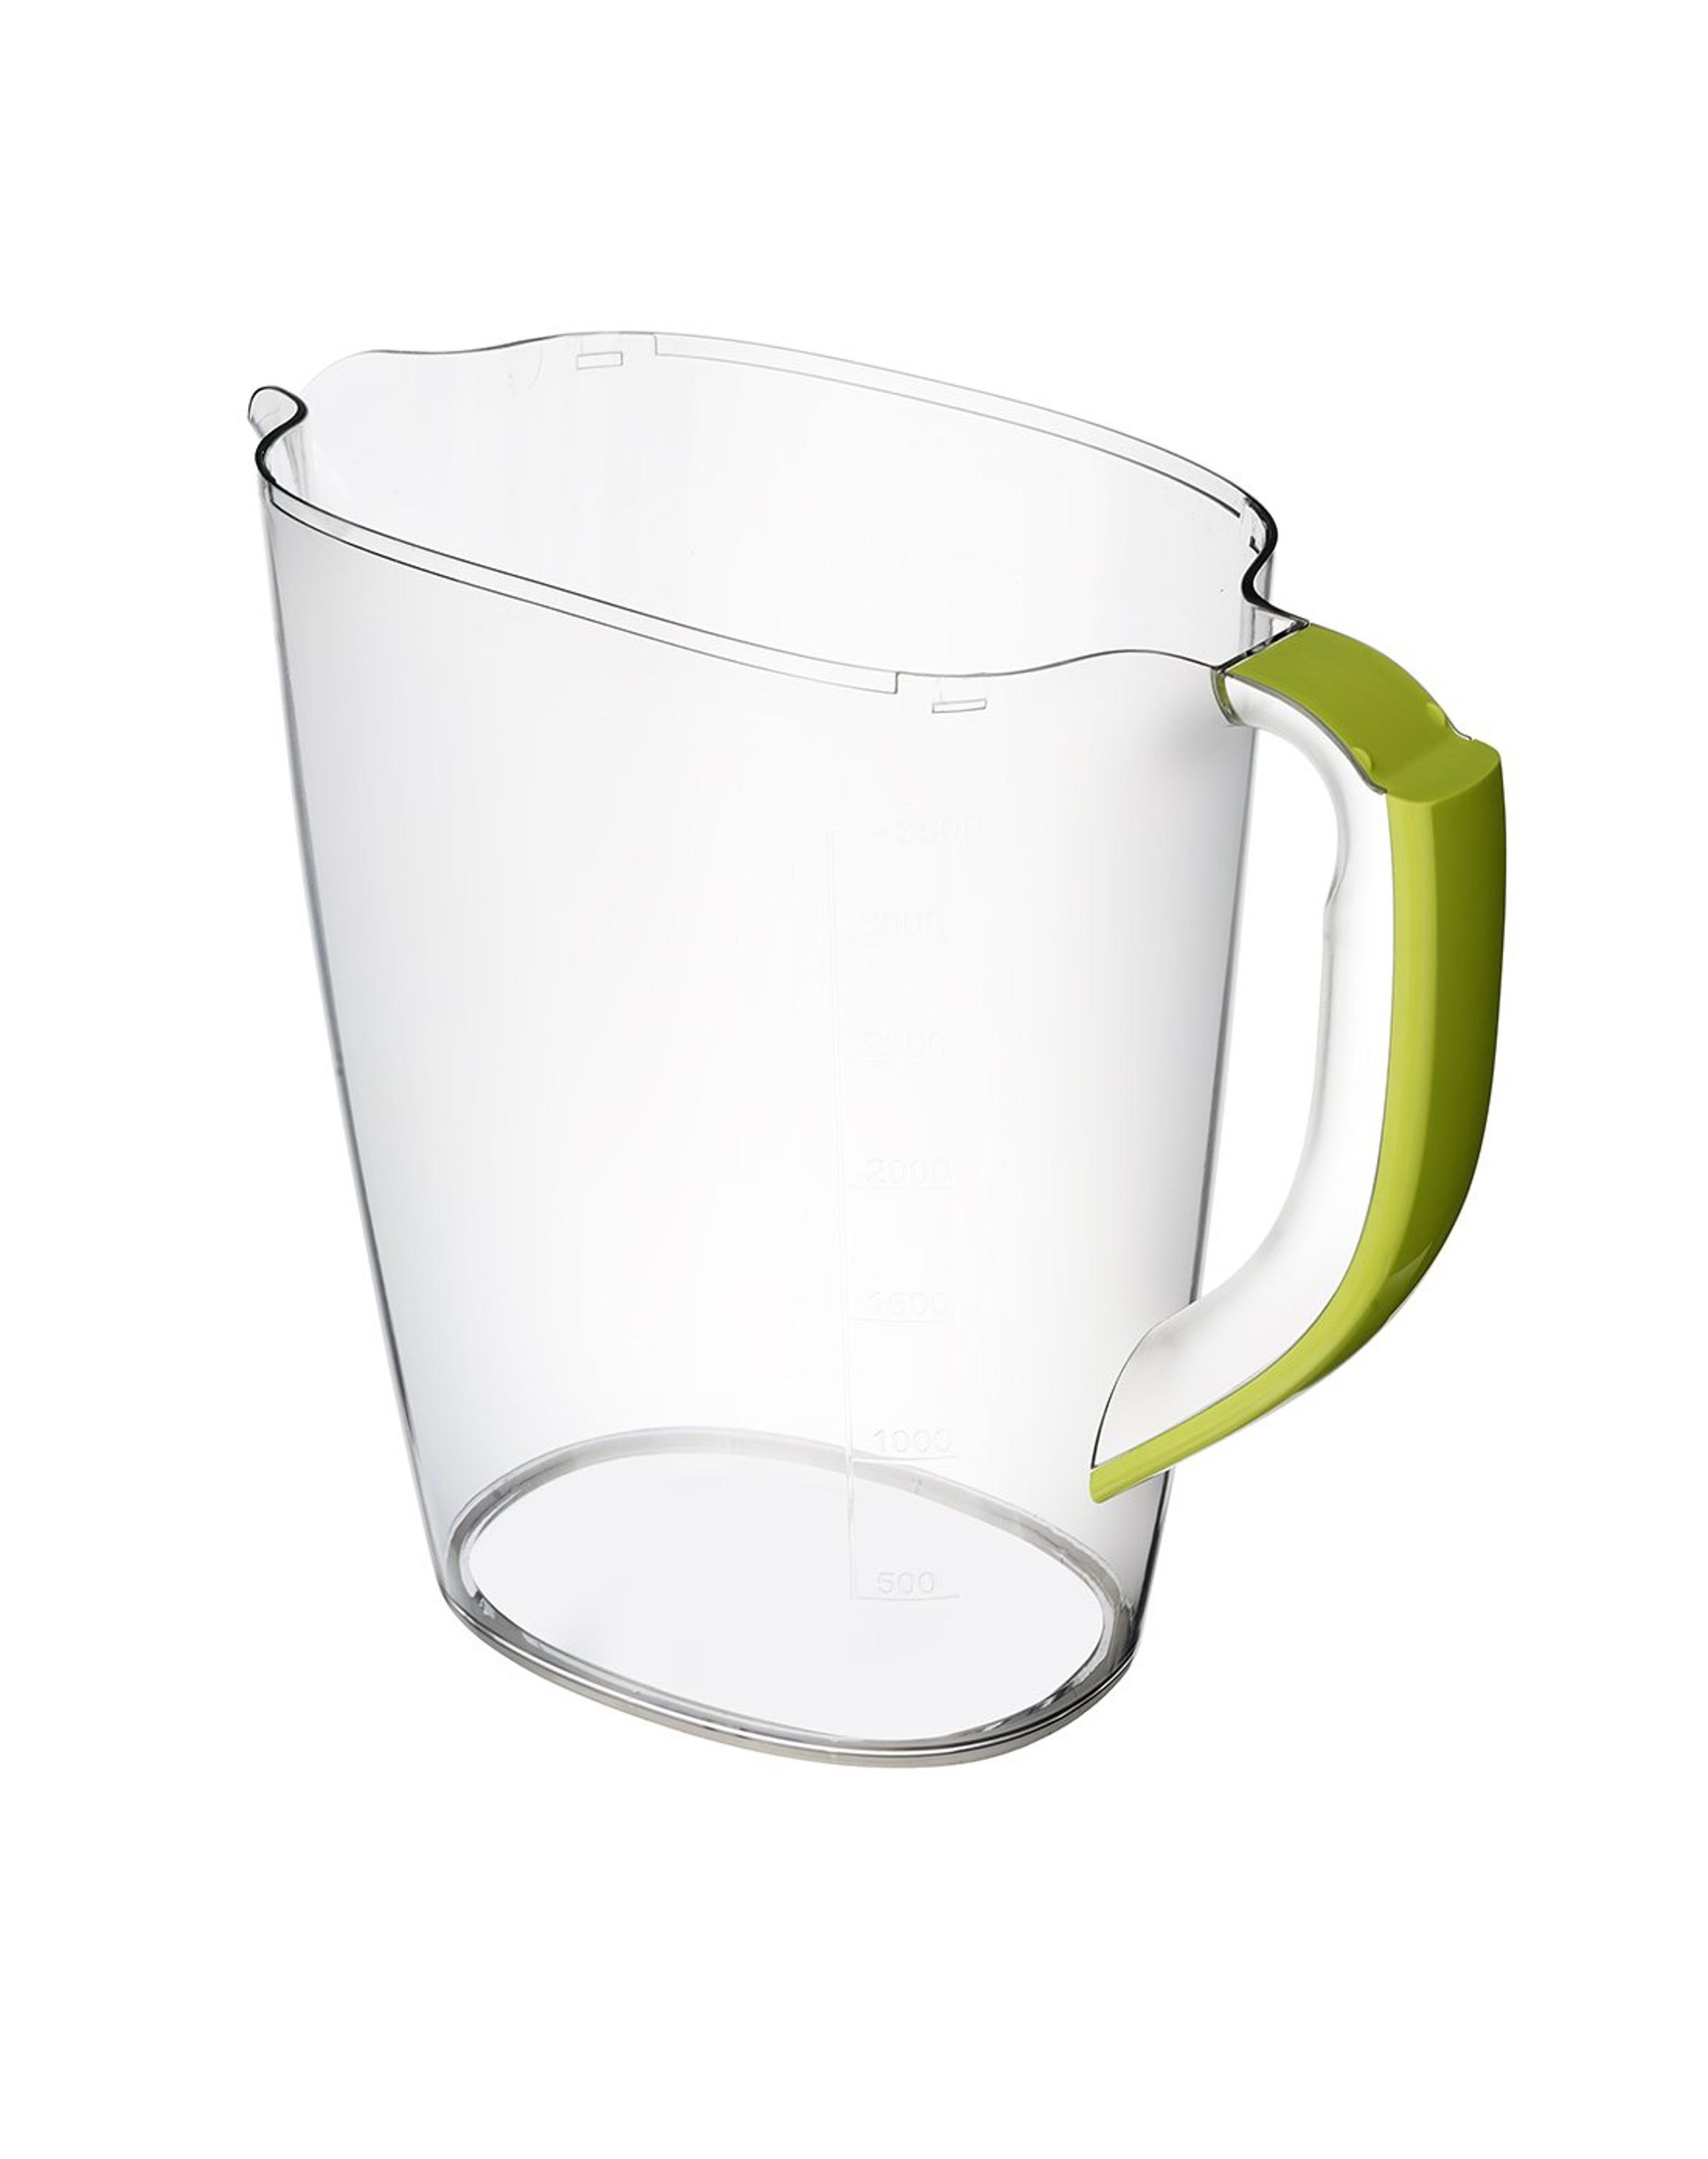 3 5l Capacity Alkaline Water Filter Pitcher With Coco